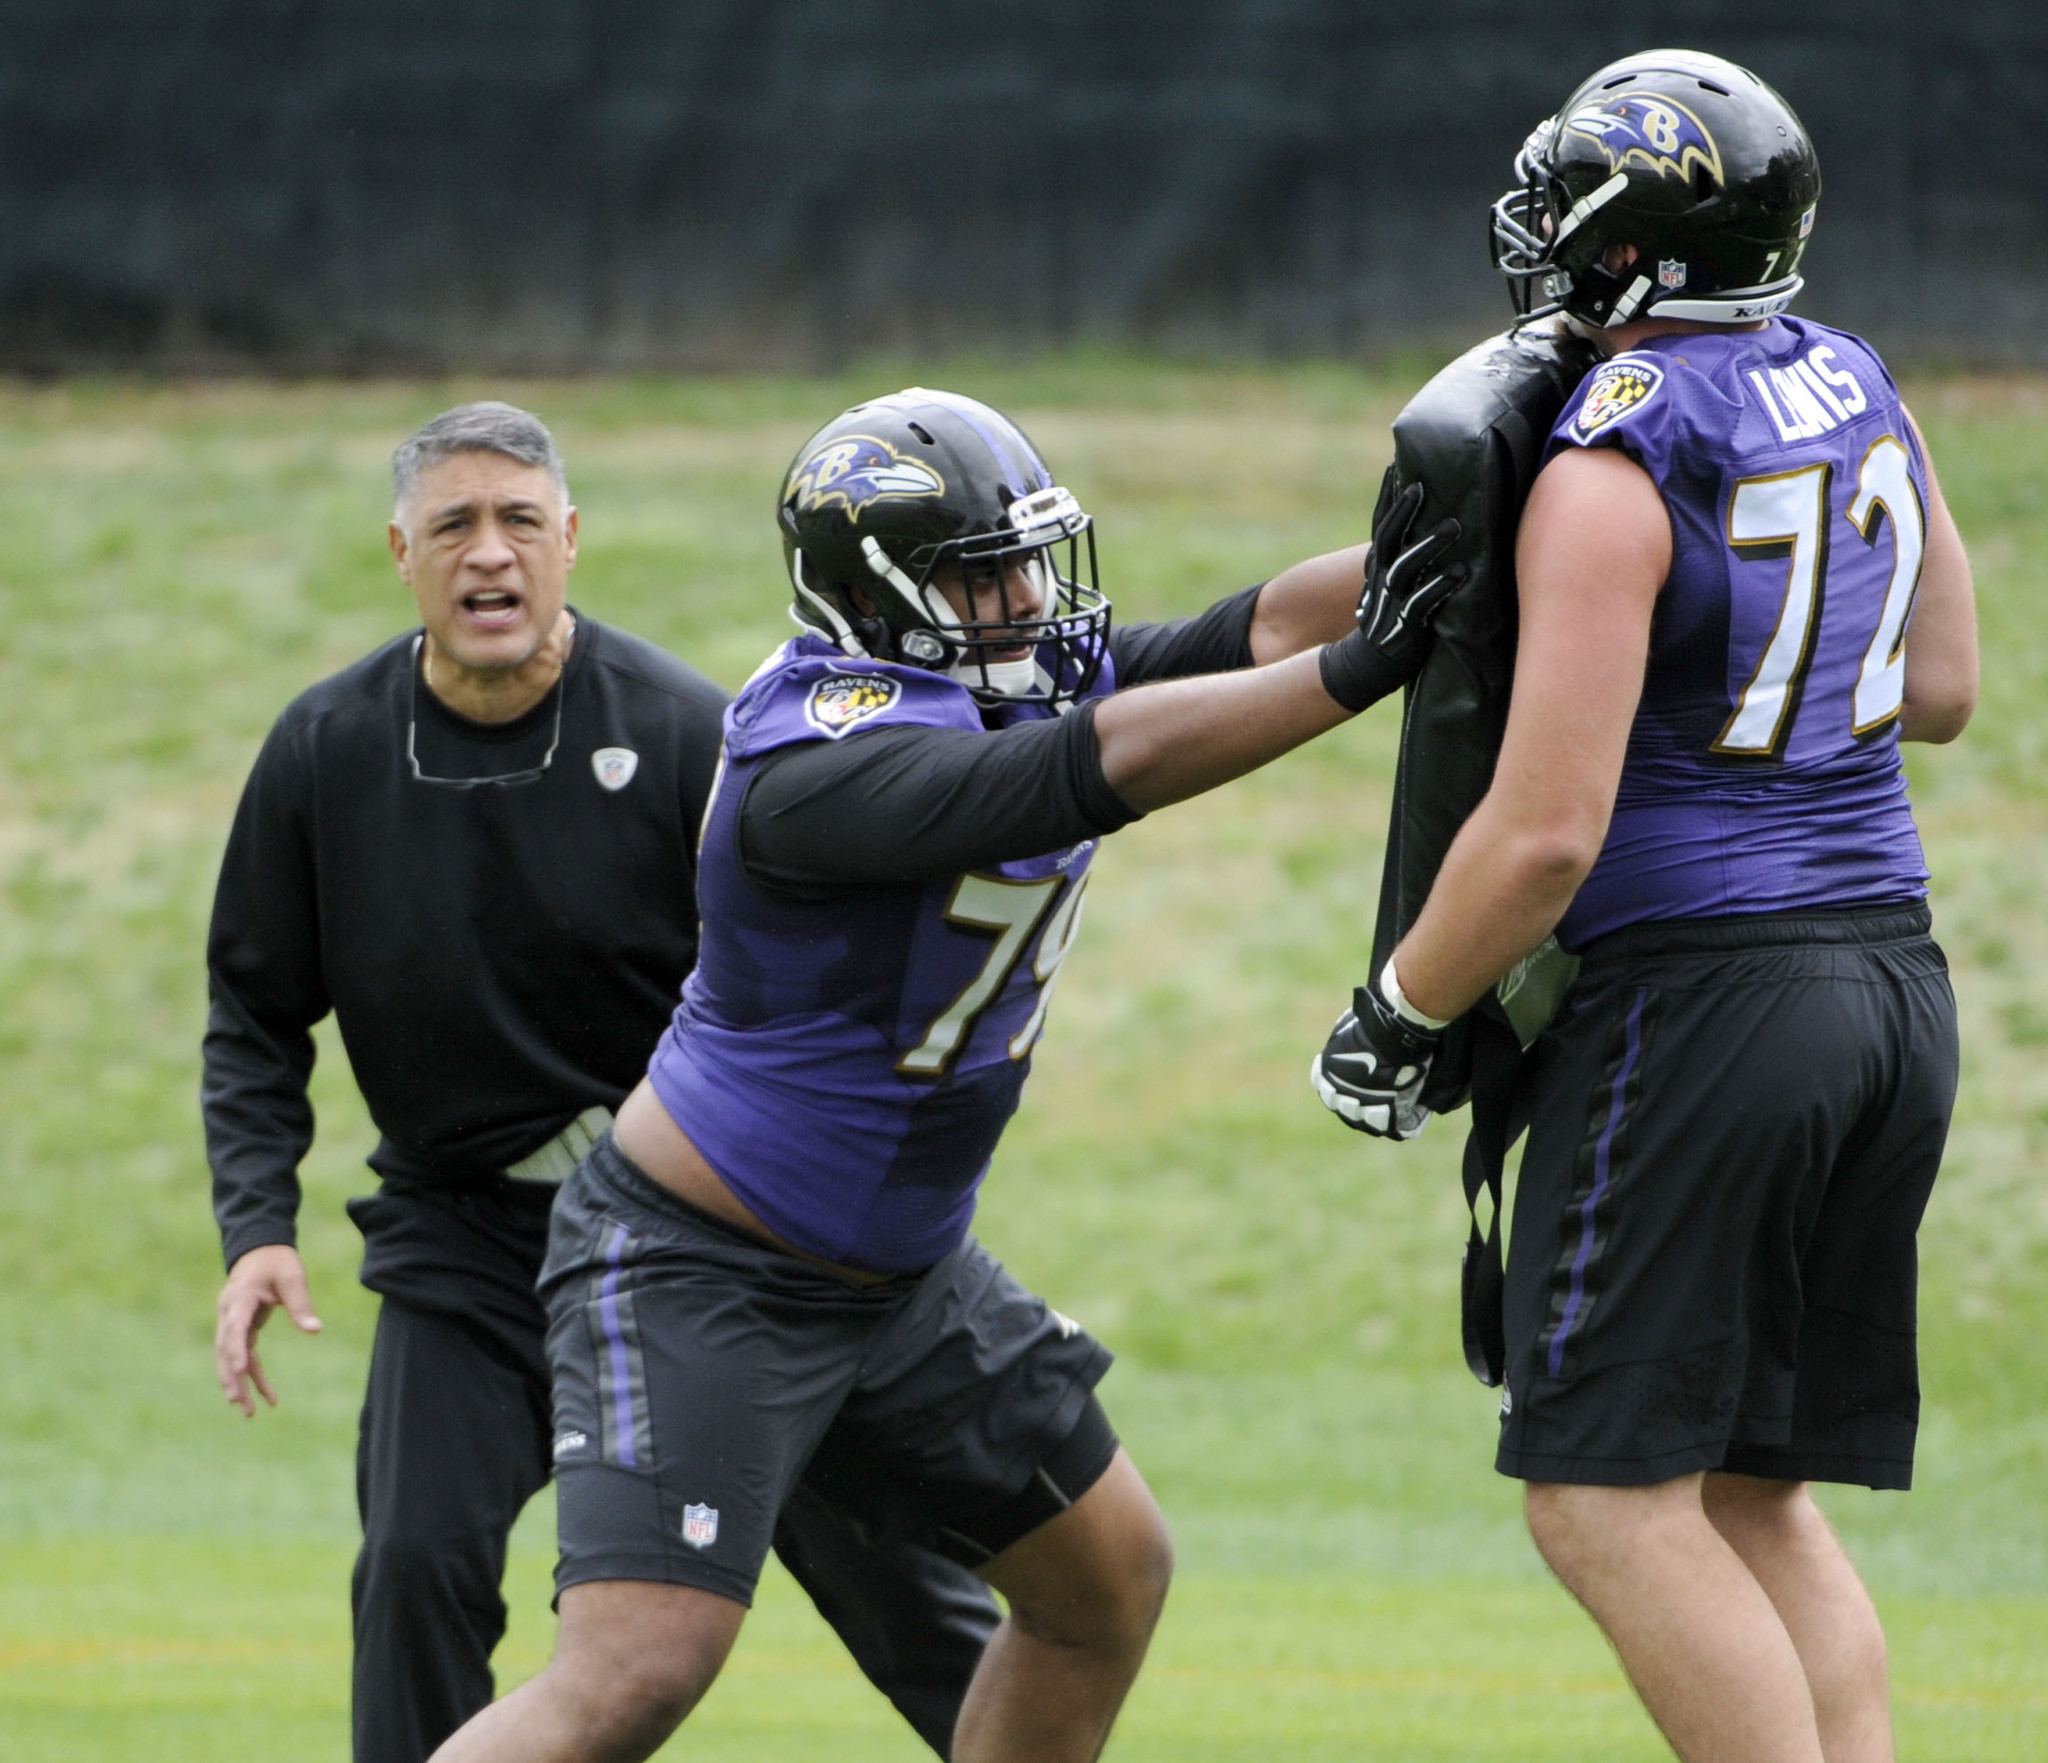 Bal-ravens-training-camp-breakdown-offensive-line-20160714